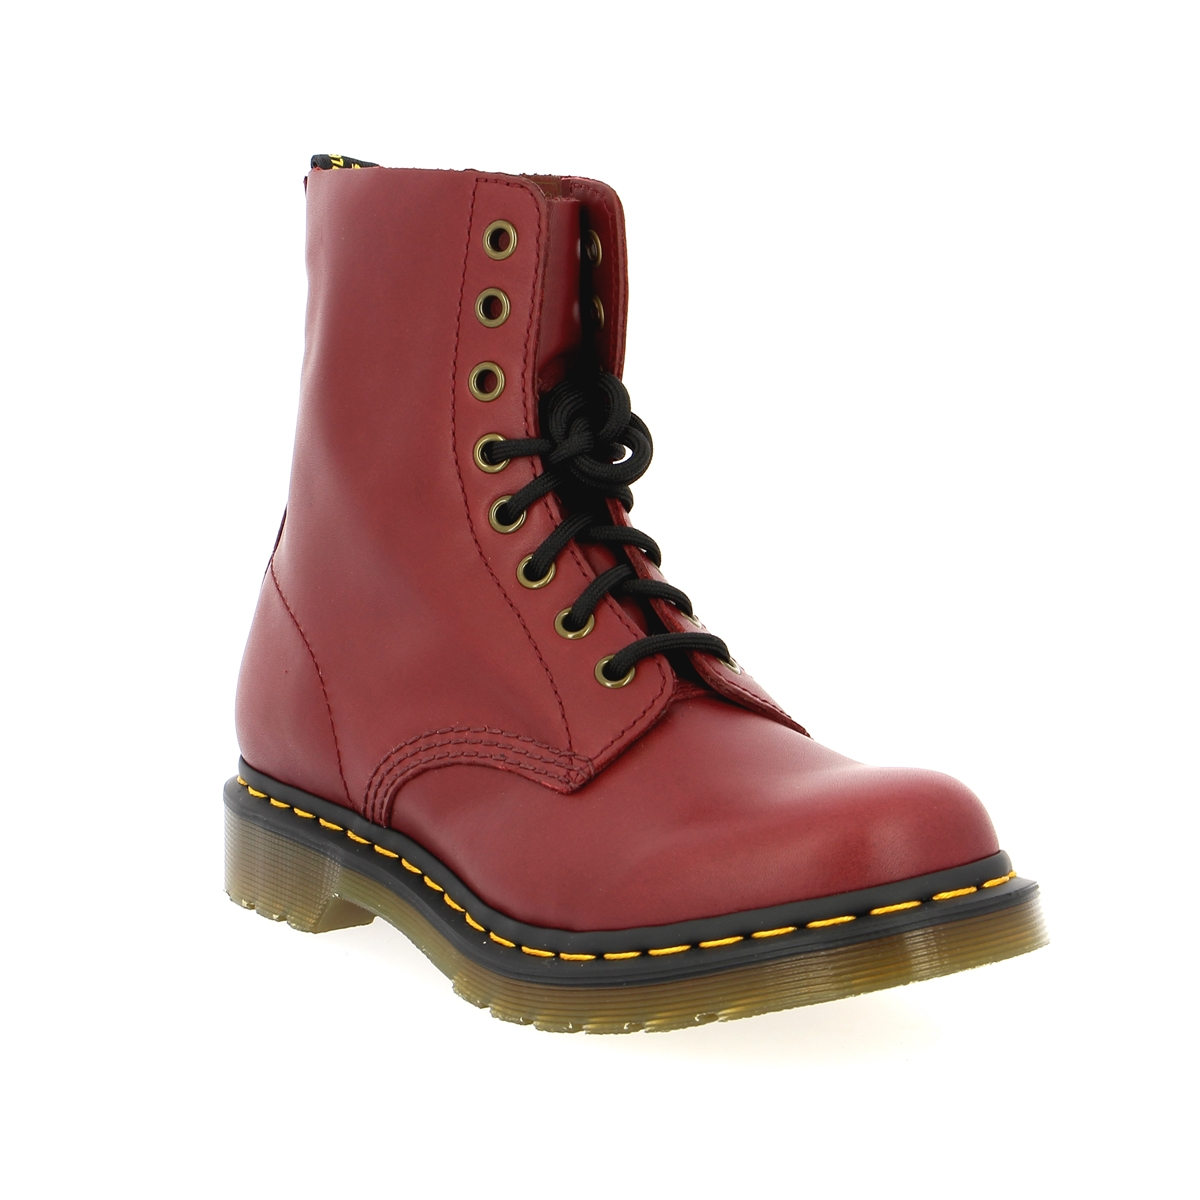 Bottinen Doc Martens rood